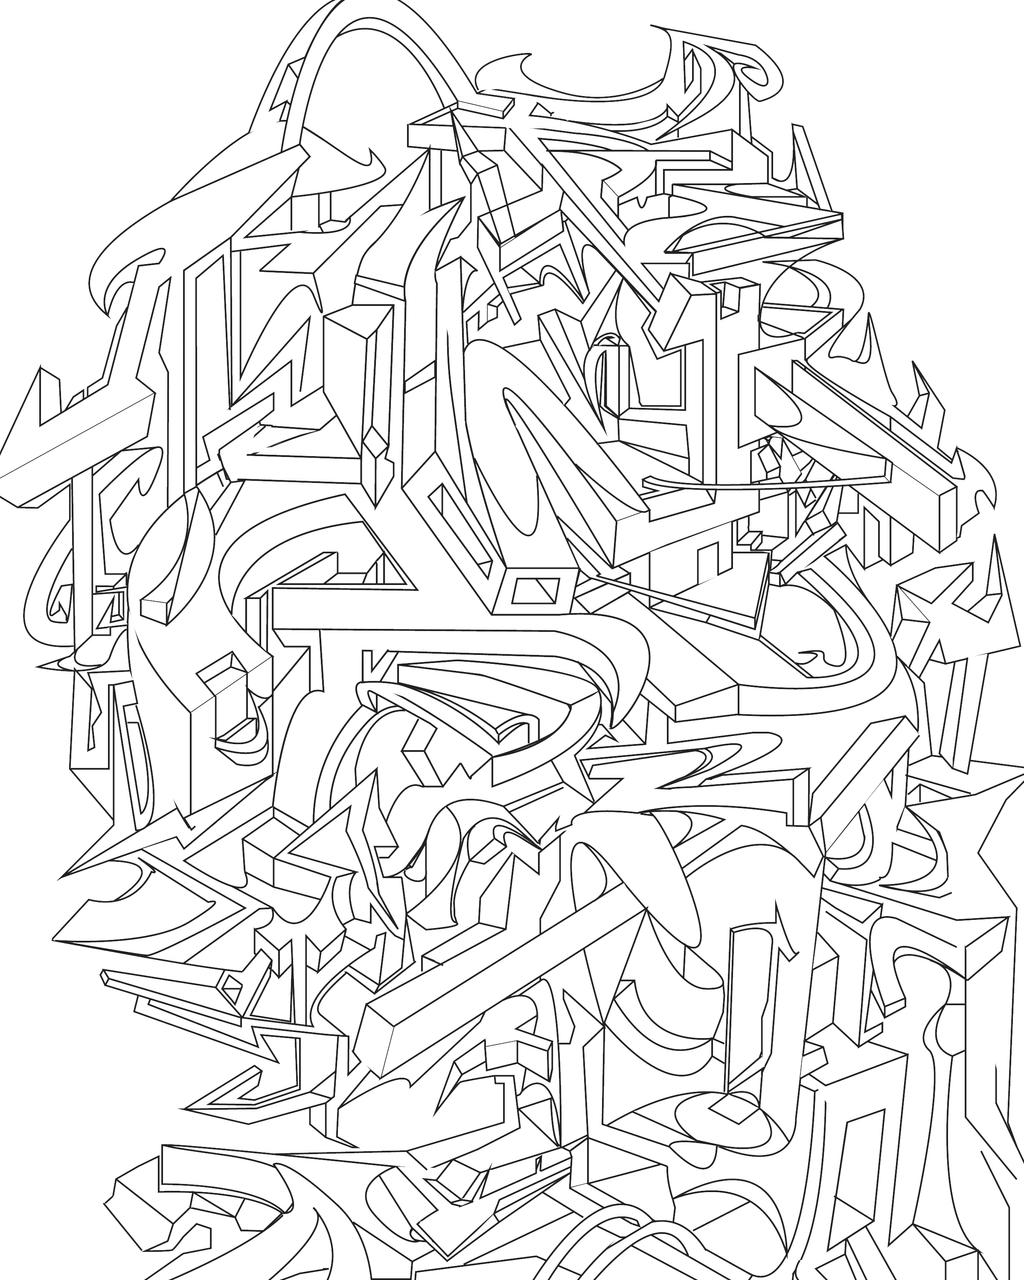 Line Art Design Abstract : Easy abstract line drawings imgkid the image